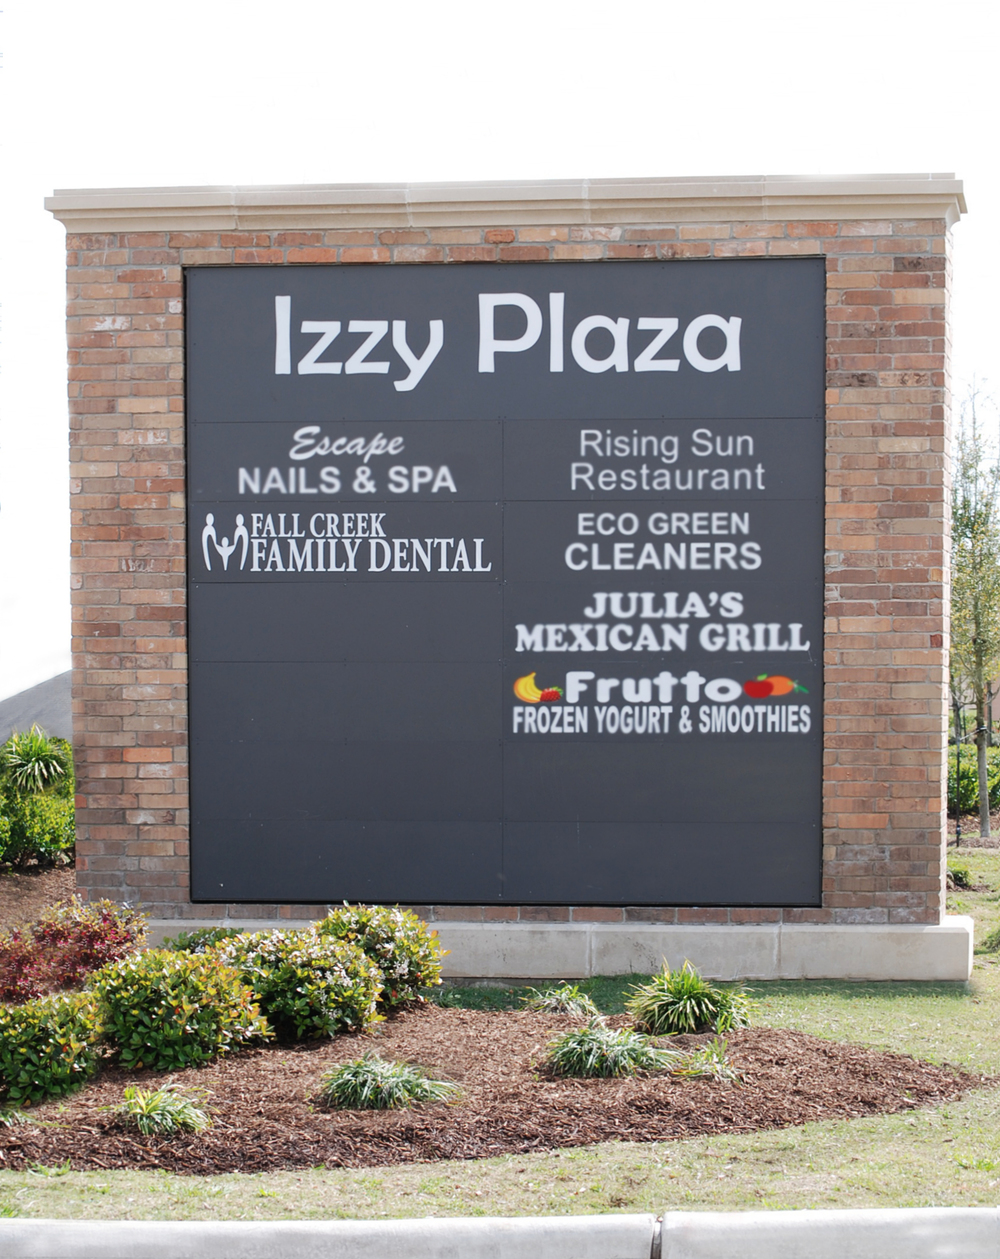 Fall Creek Family Dental Office Sign in Izzy Plaza, Humble Texas